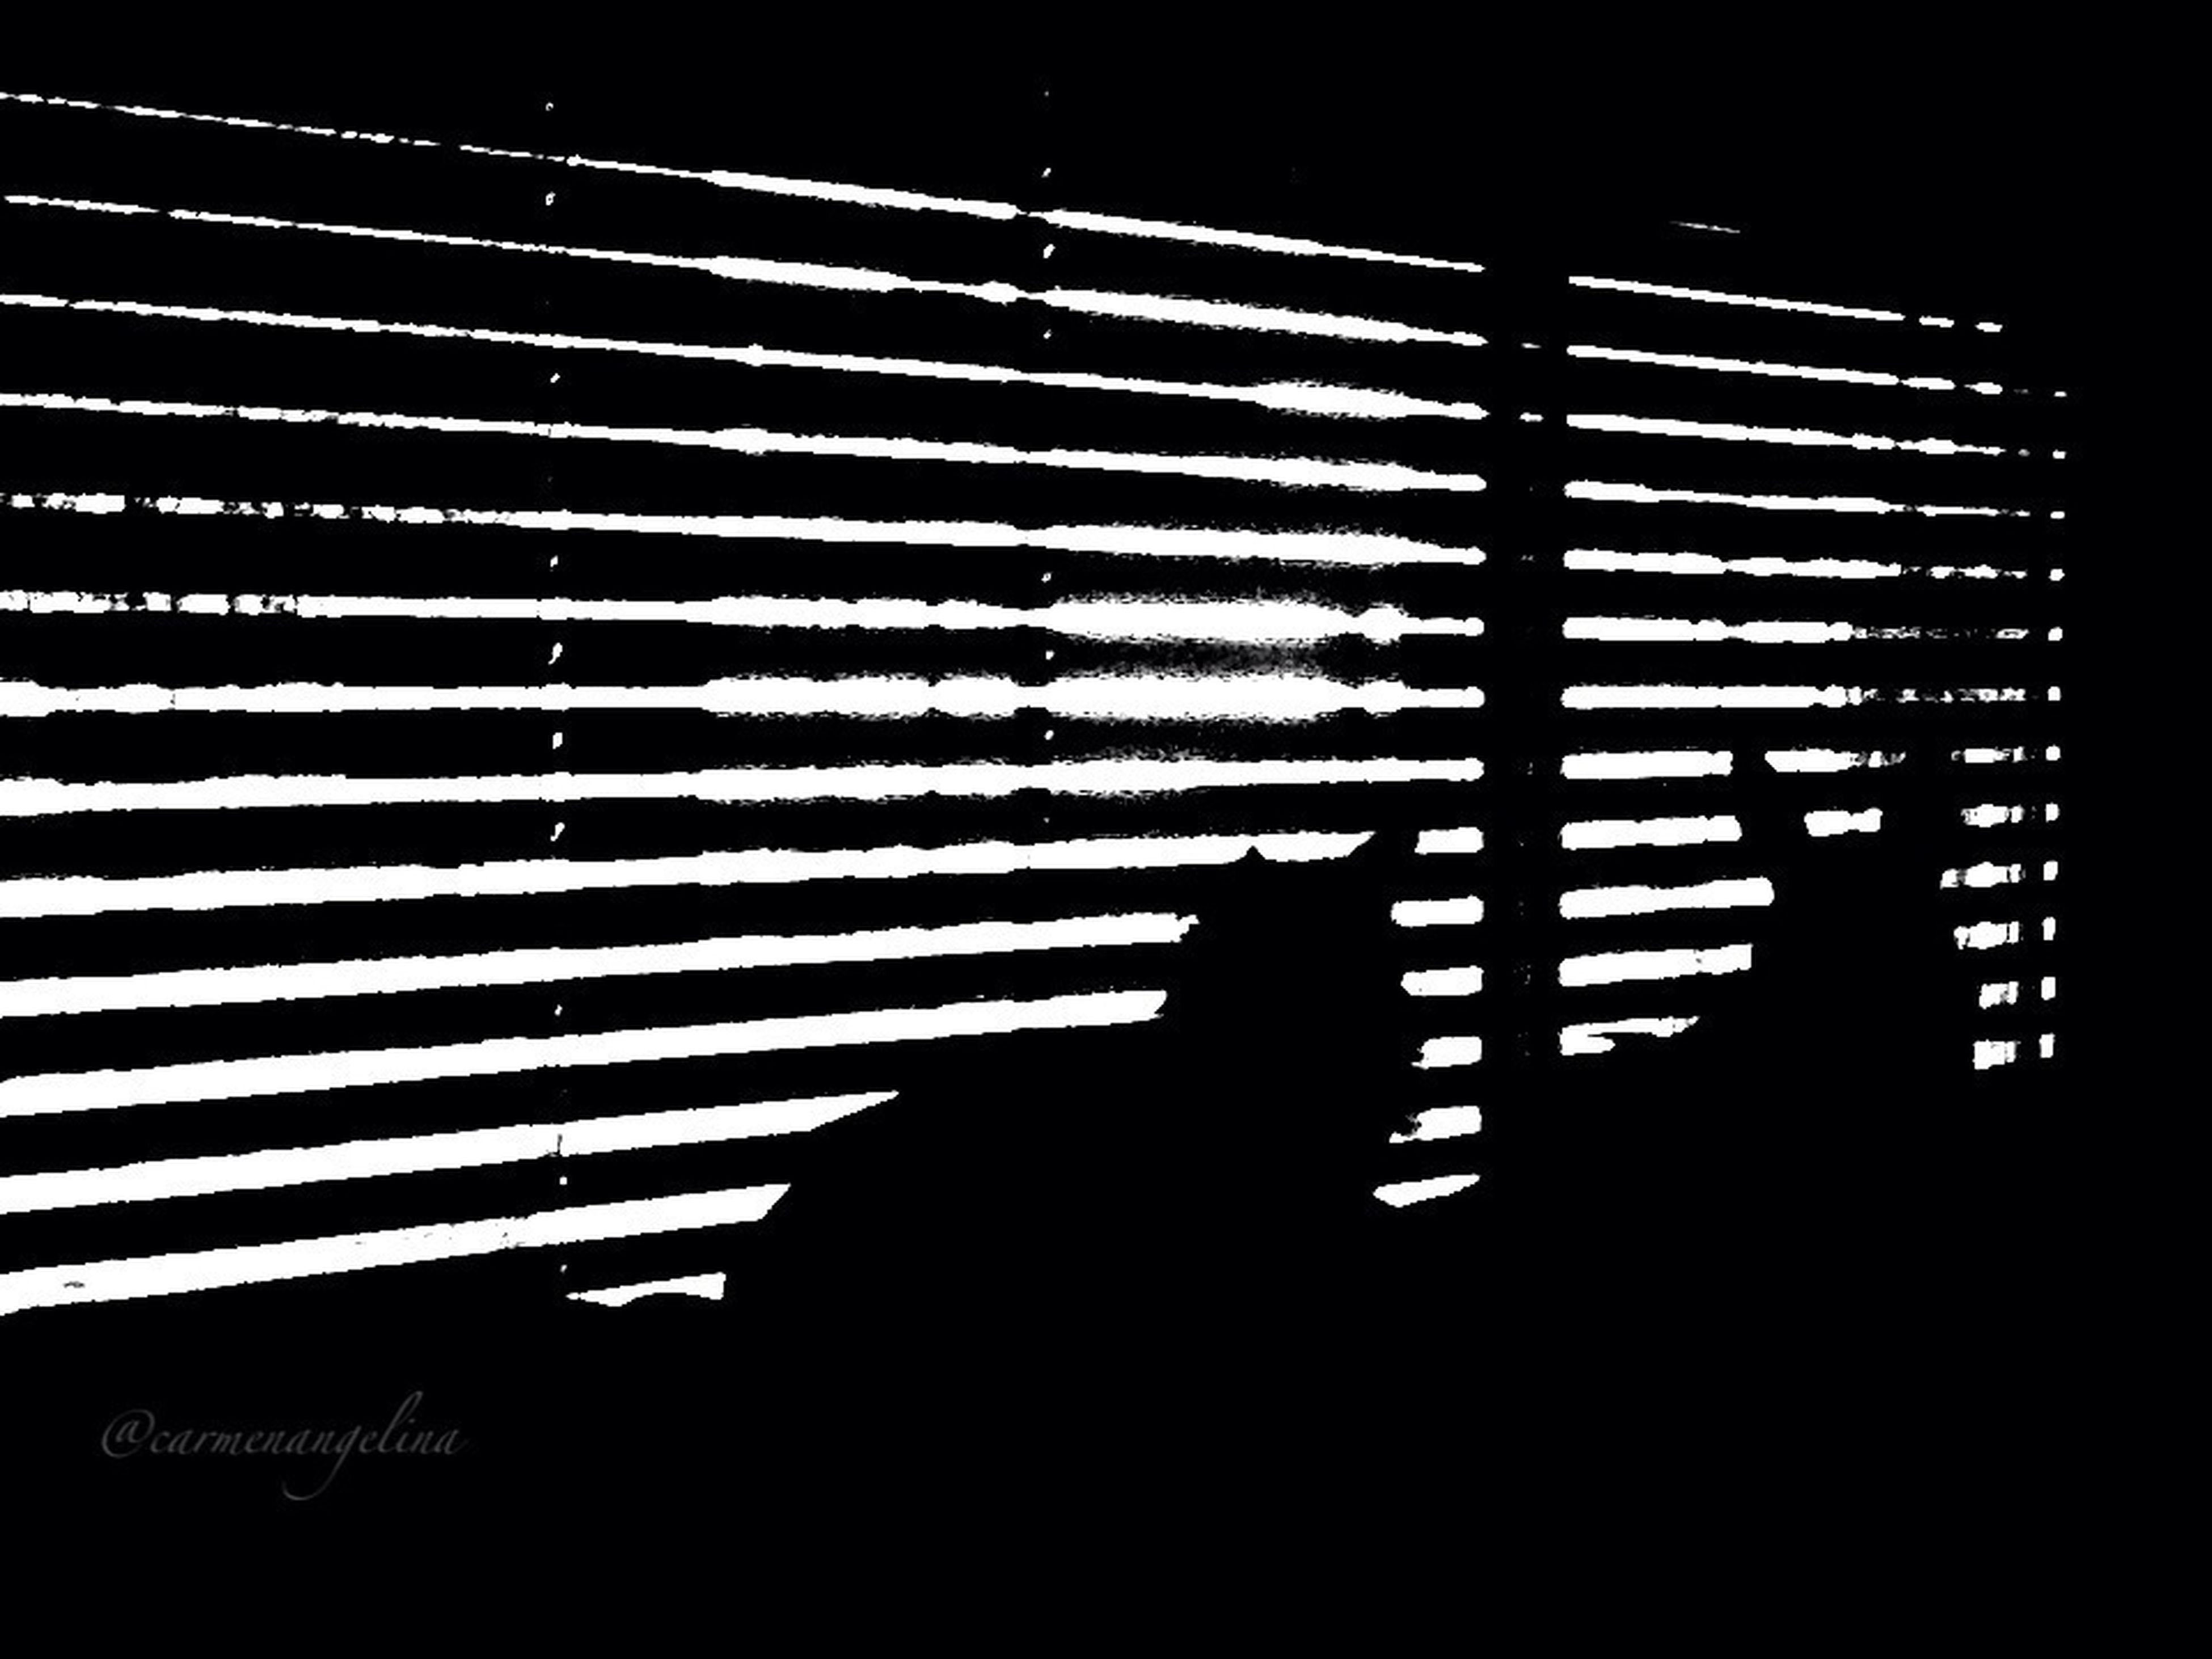 silhouette, low angle view, built structure, dark, architecture, night, pattern, building exterior, indoors, building, window, illuminated, city, shadow, modern, sunlight, no people, outline, blinds